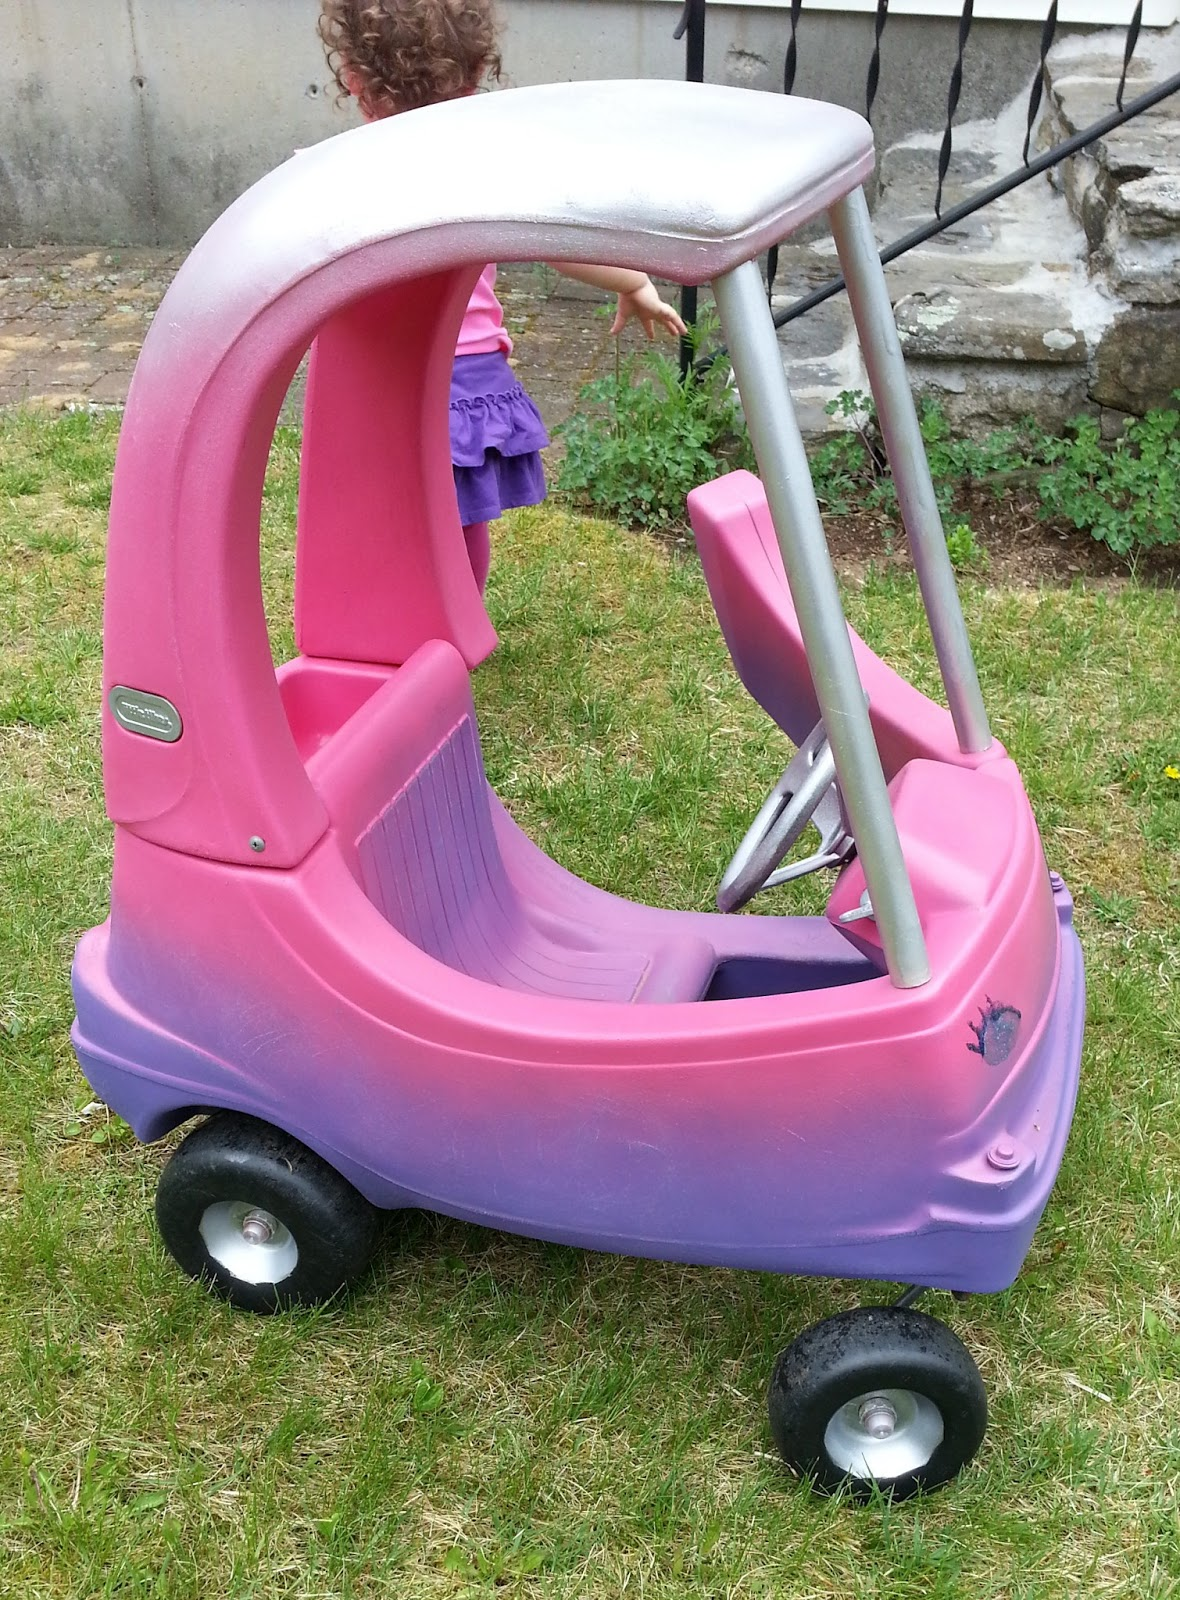 Stay At Home Stina Diy Cozy Coupe Paint Job